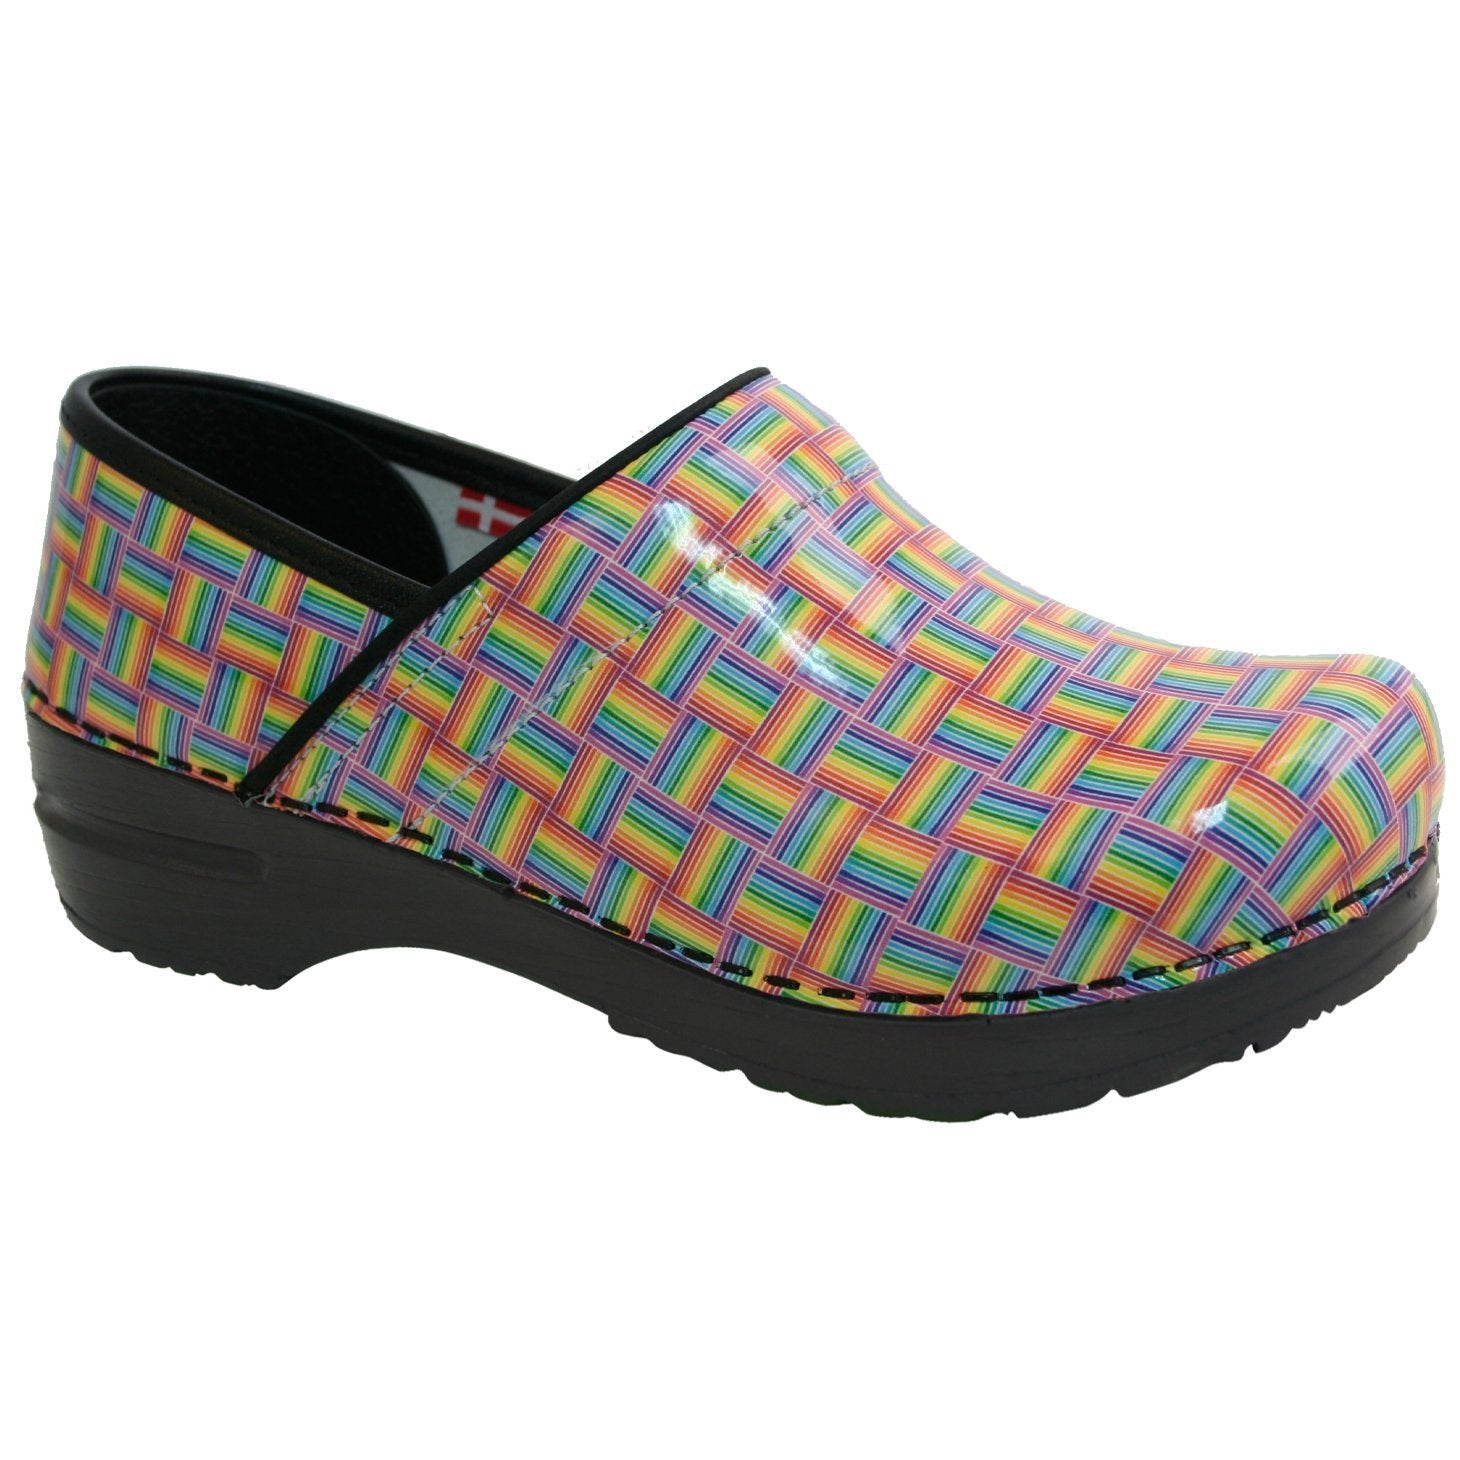 Sanita Edie Women's Closed Back Clog